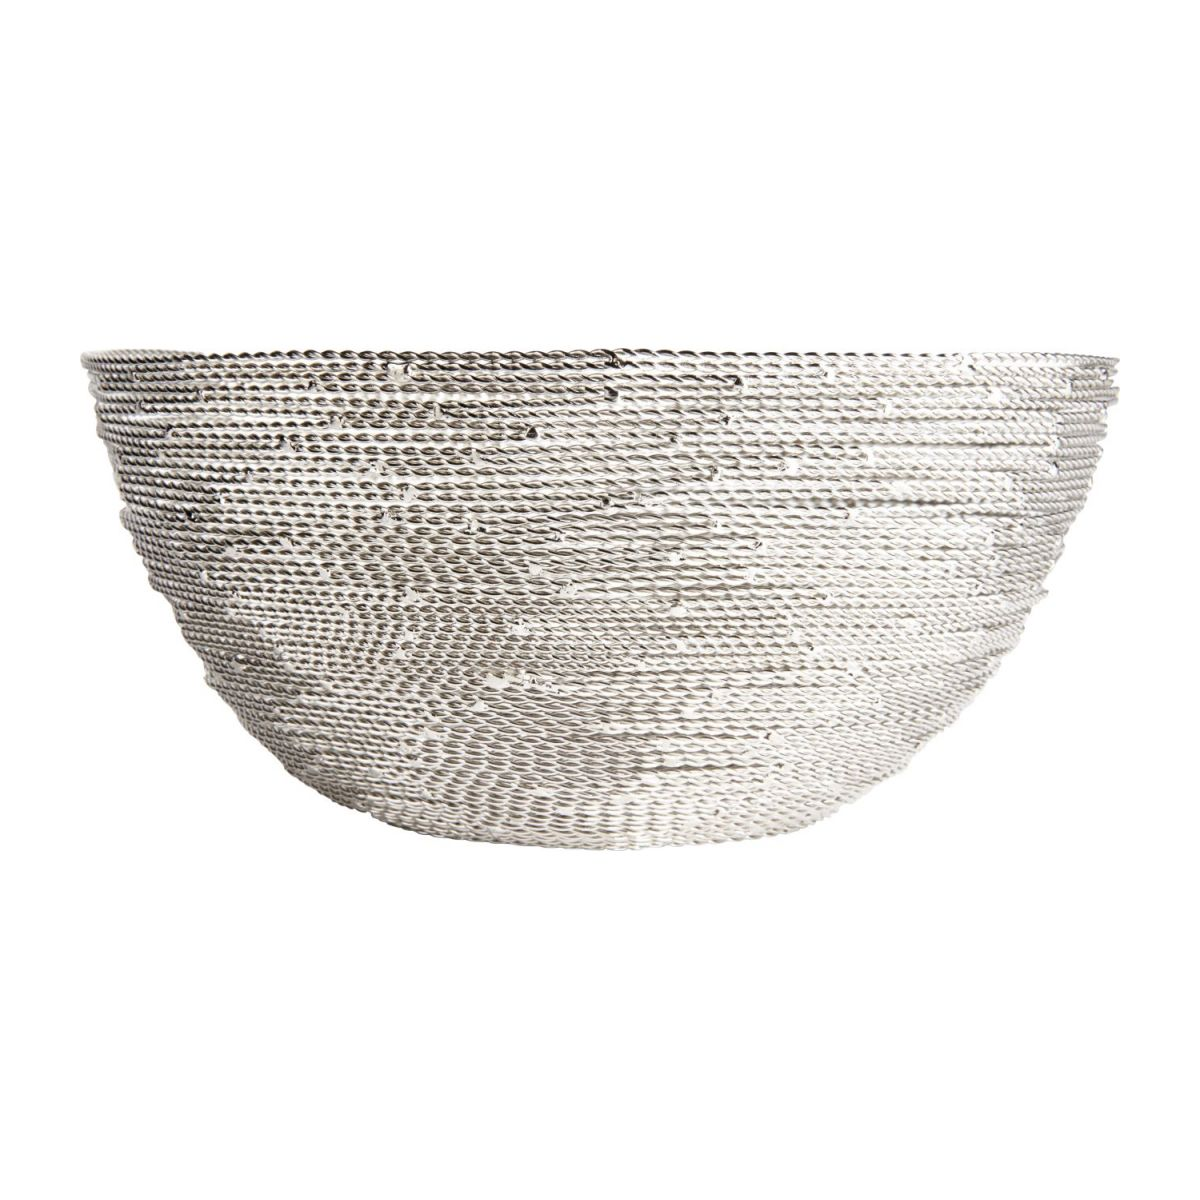 Small nickel twisted wire bowl n°2